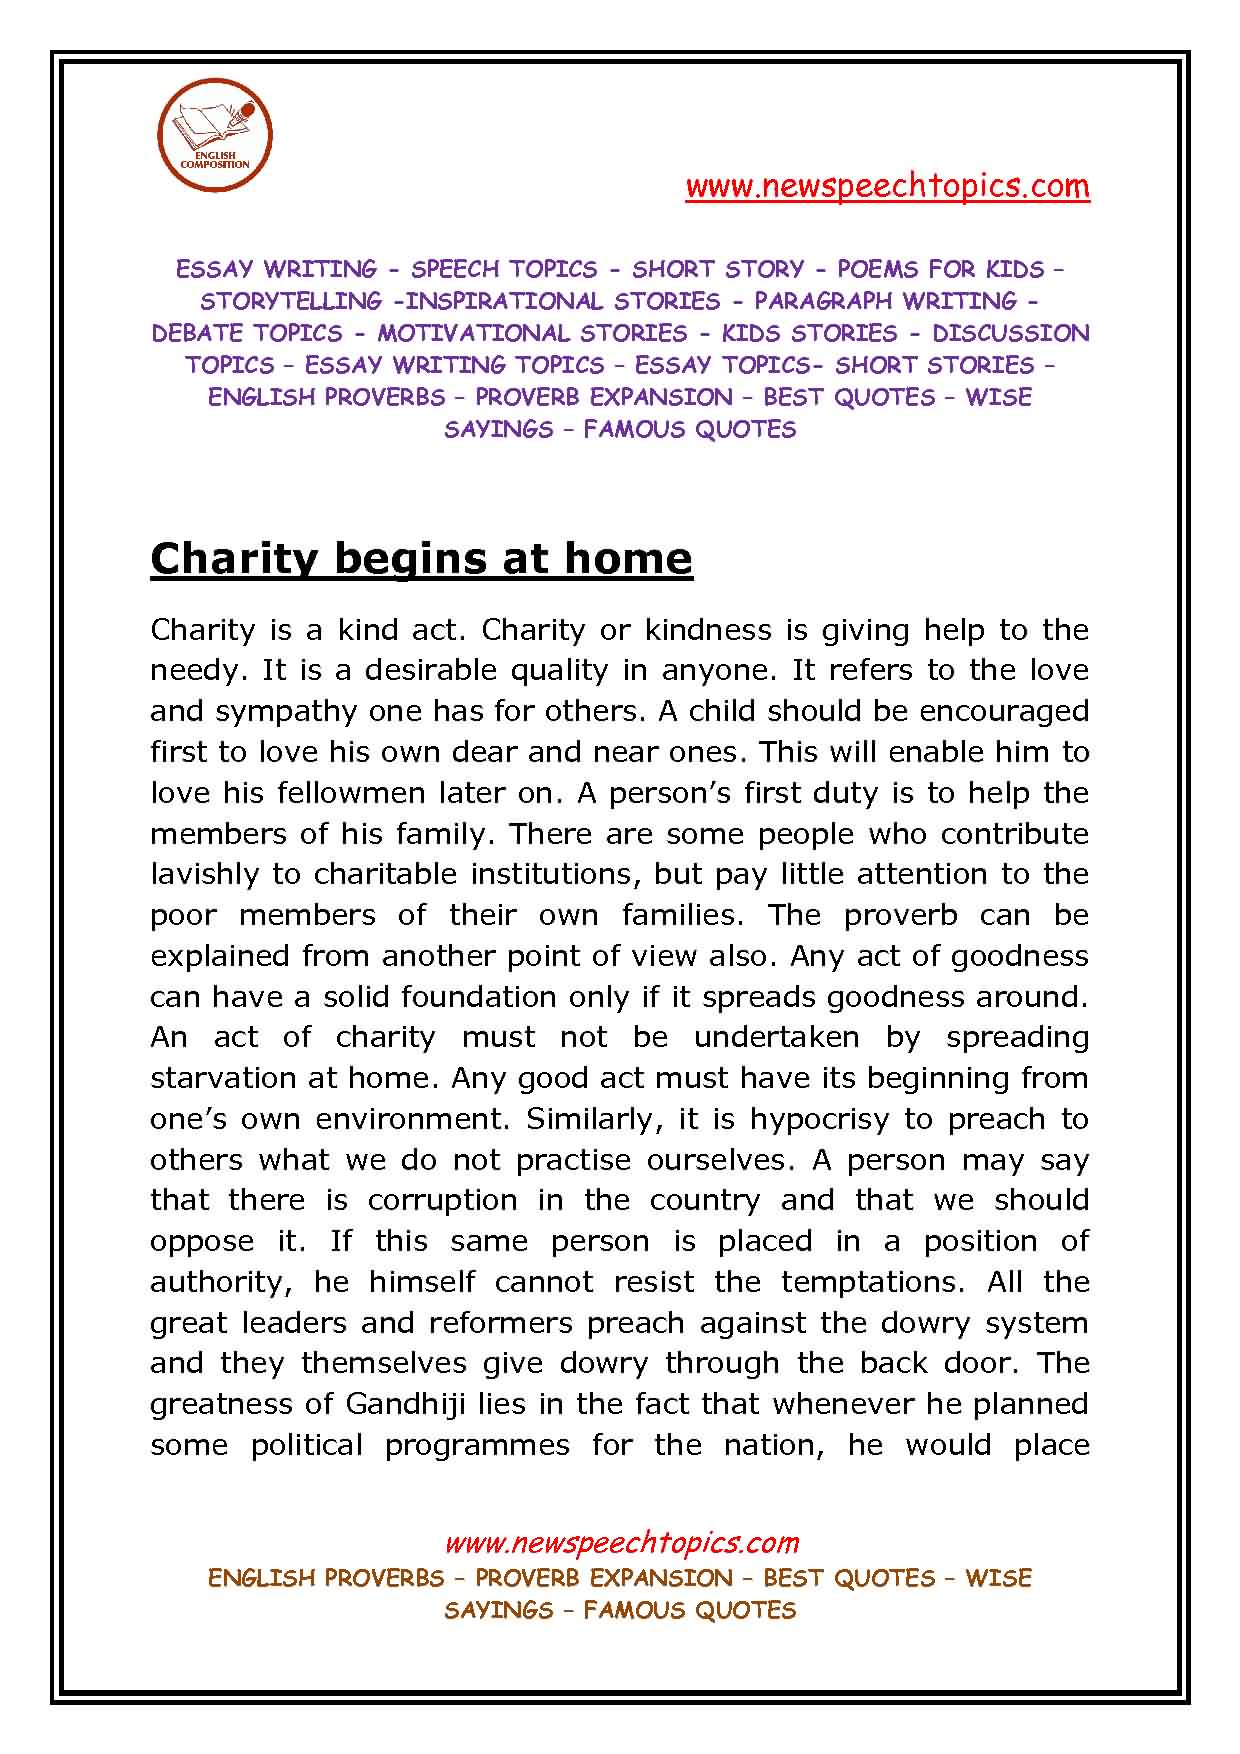 Best essay on charity begins at home